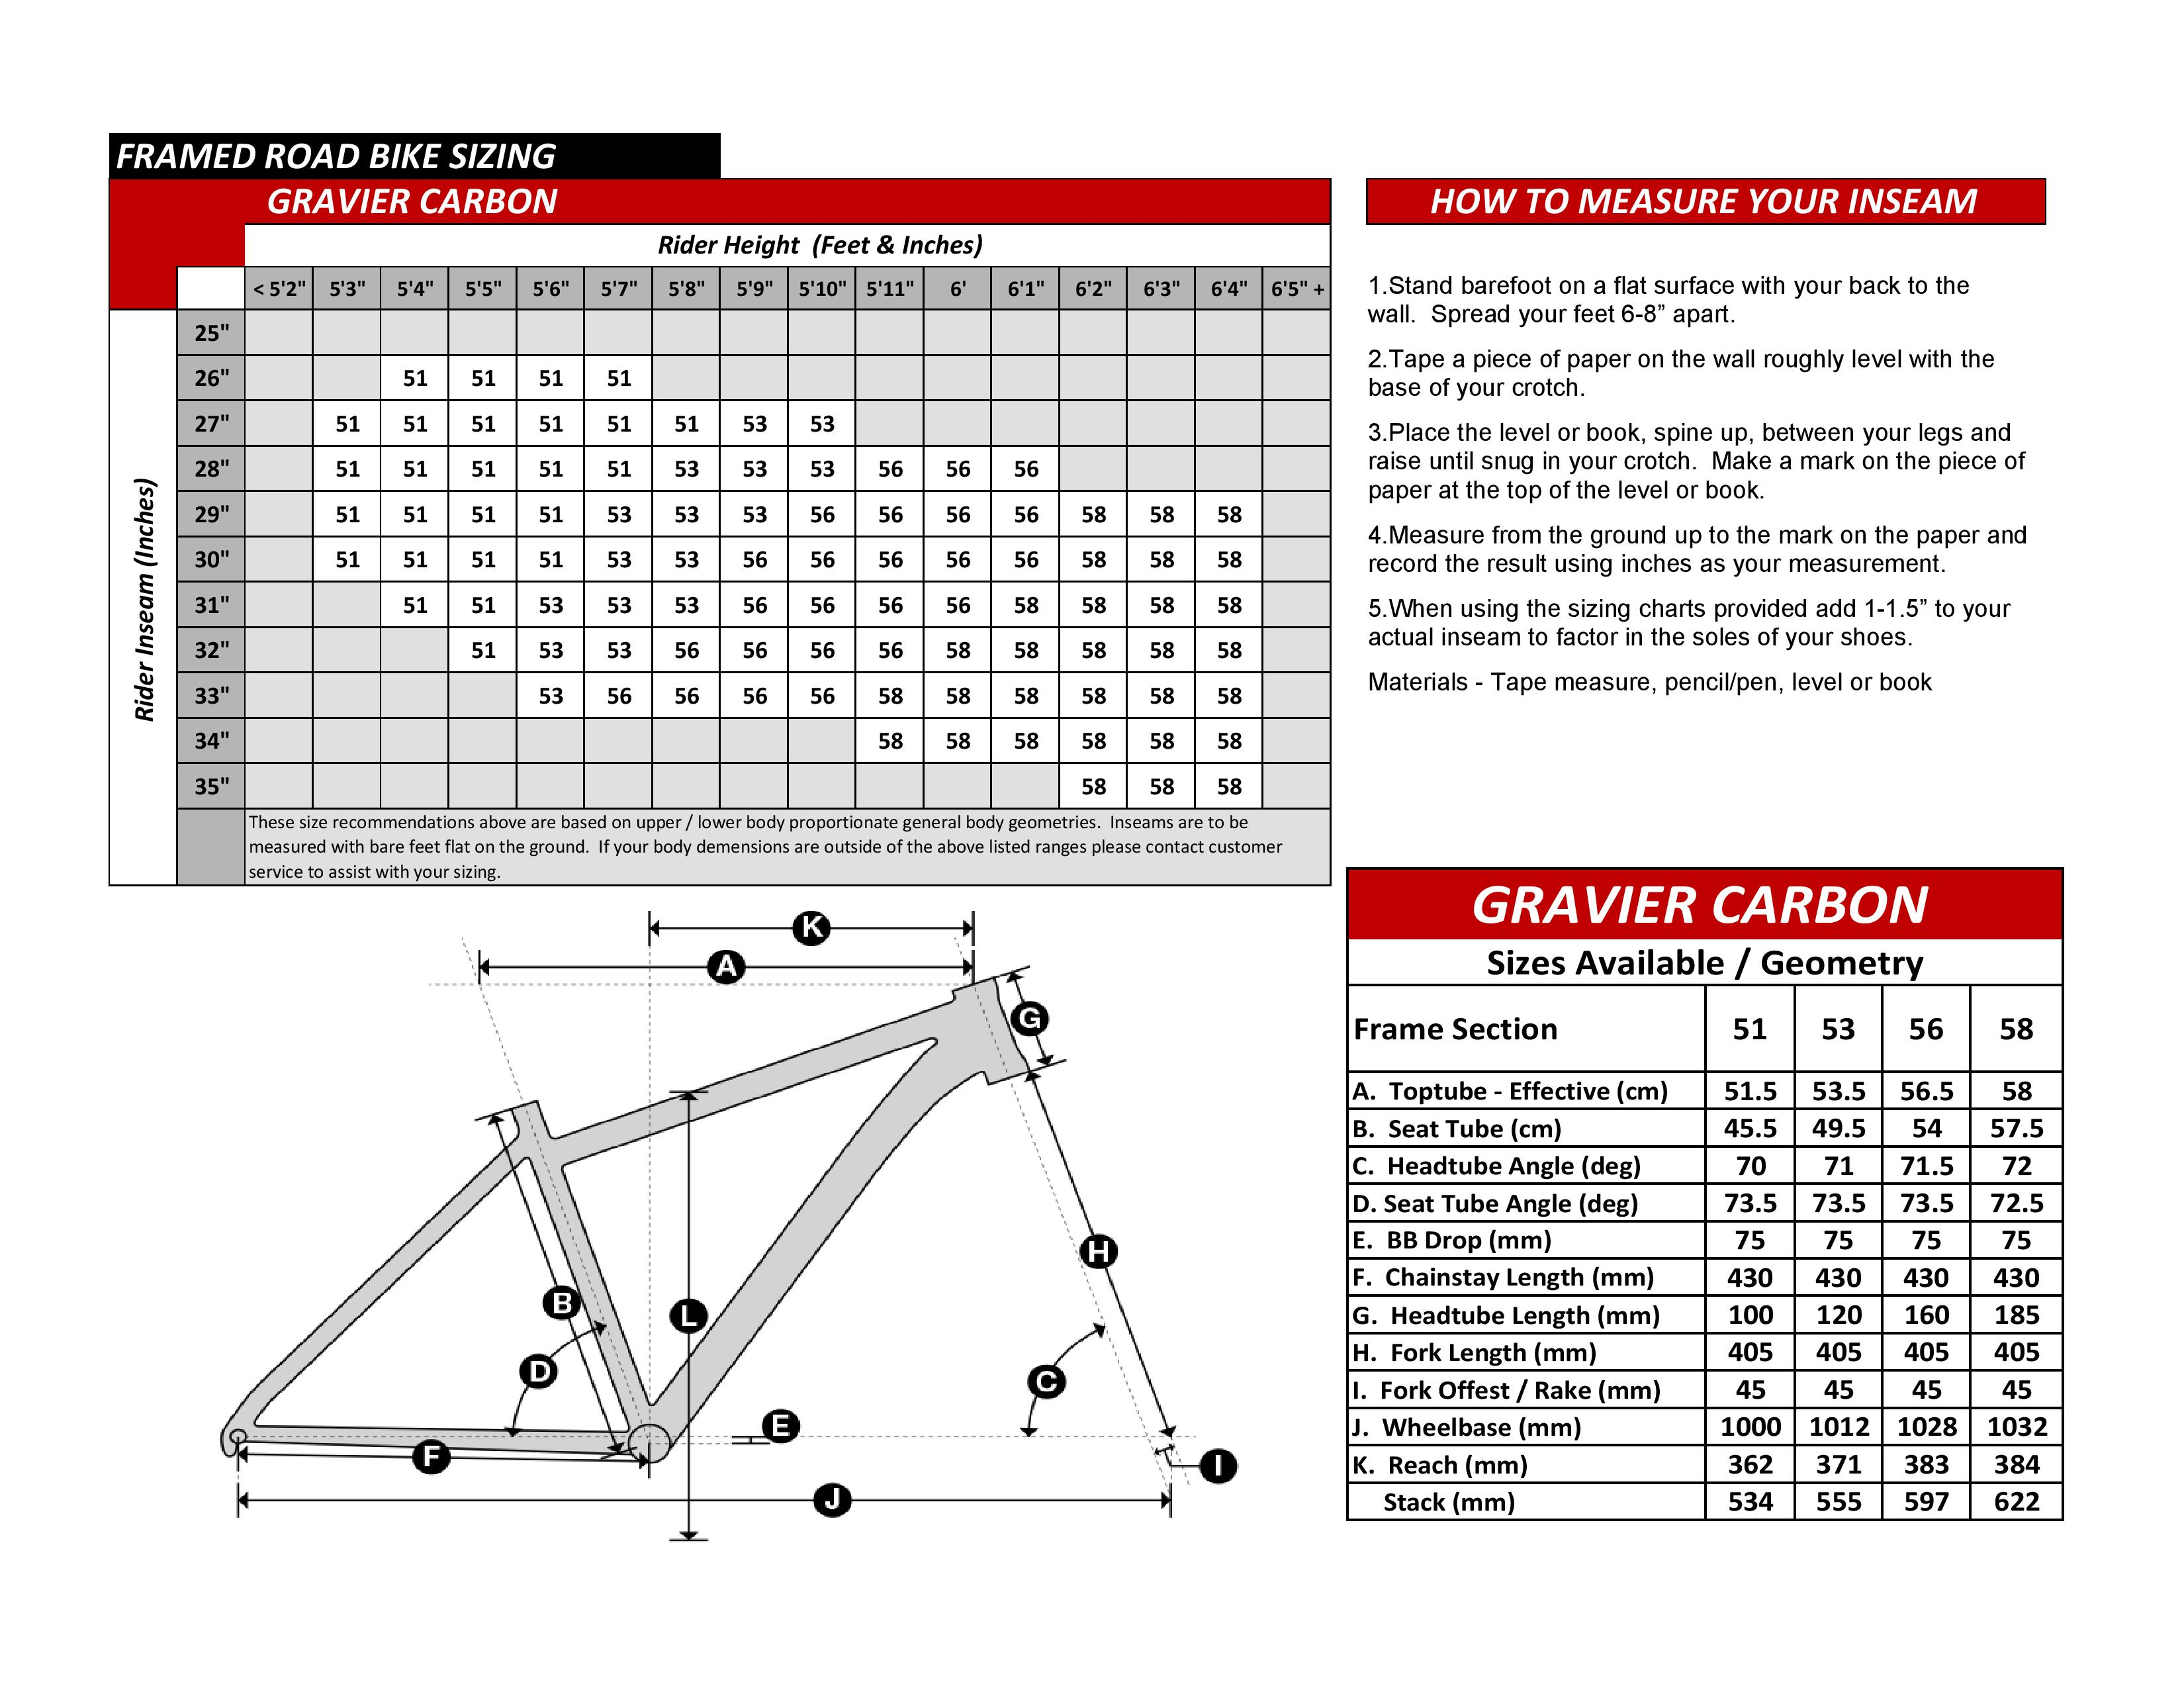 Gravier Carbon Bike Geometry Specs